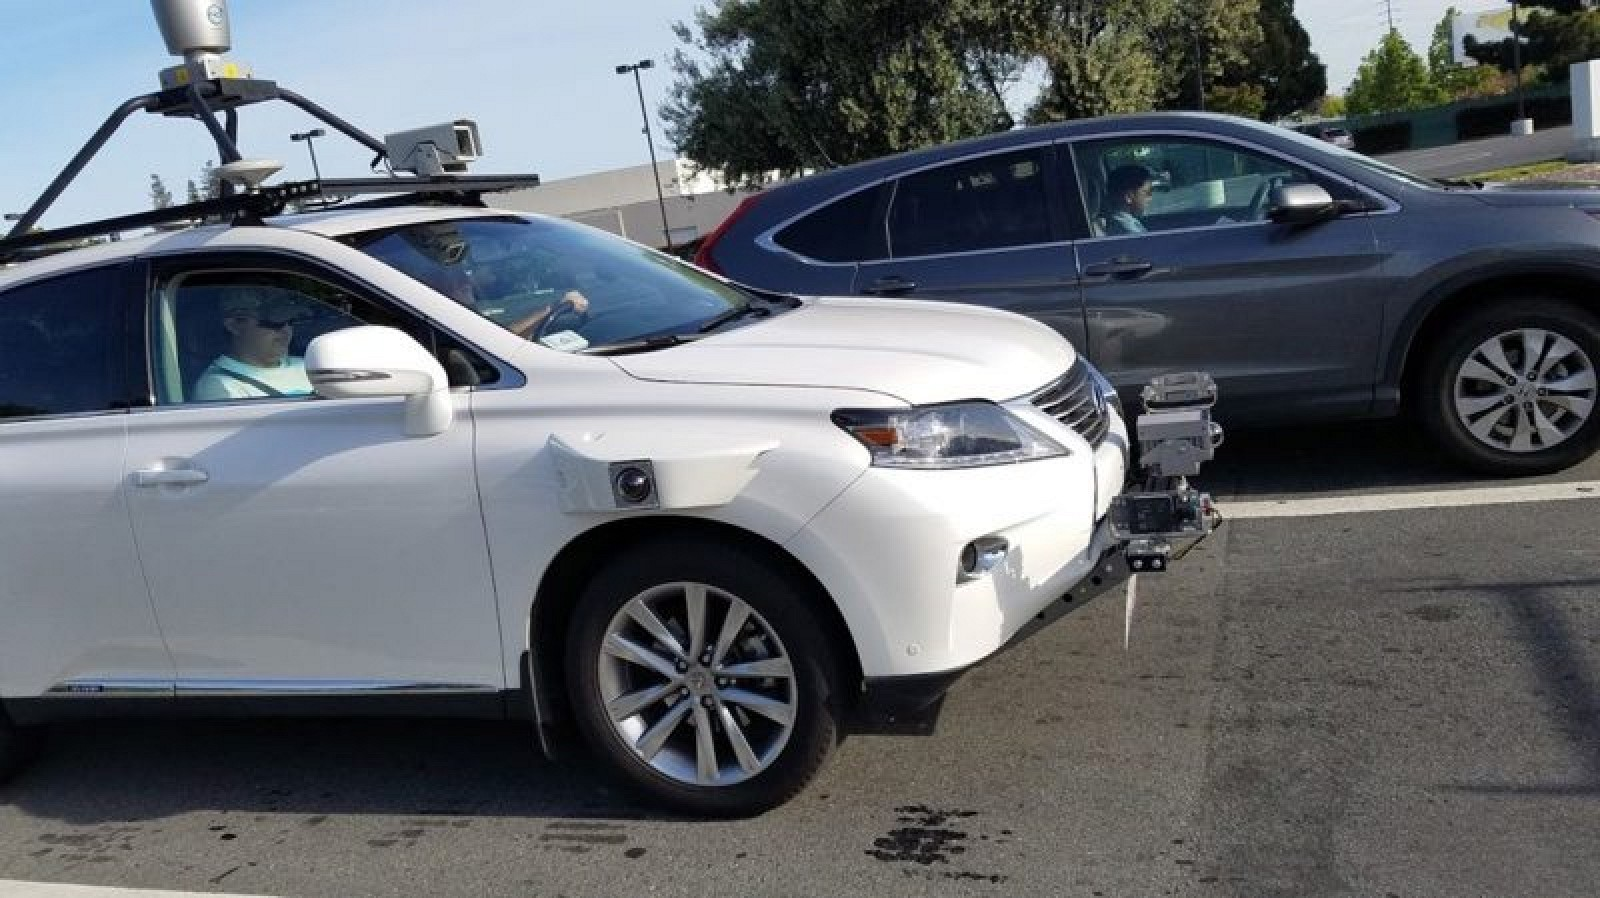 Who Makes Self-Driving Cars?